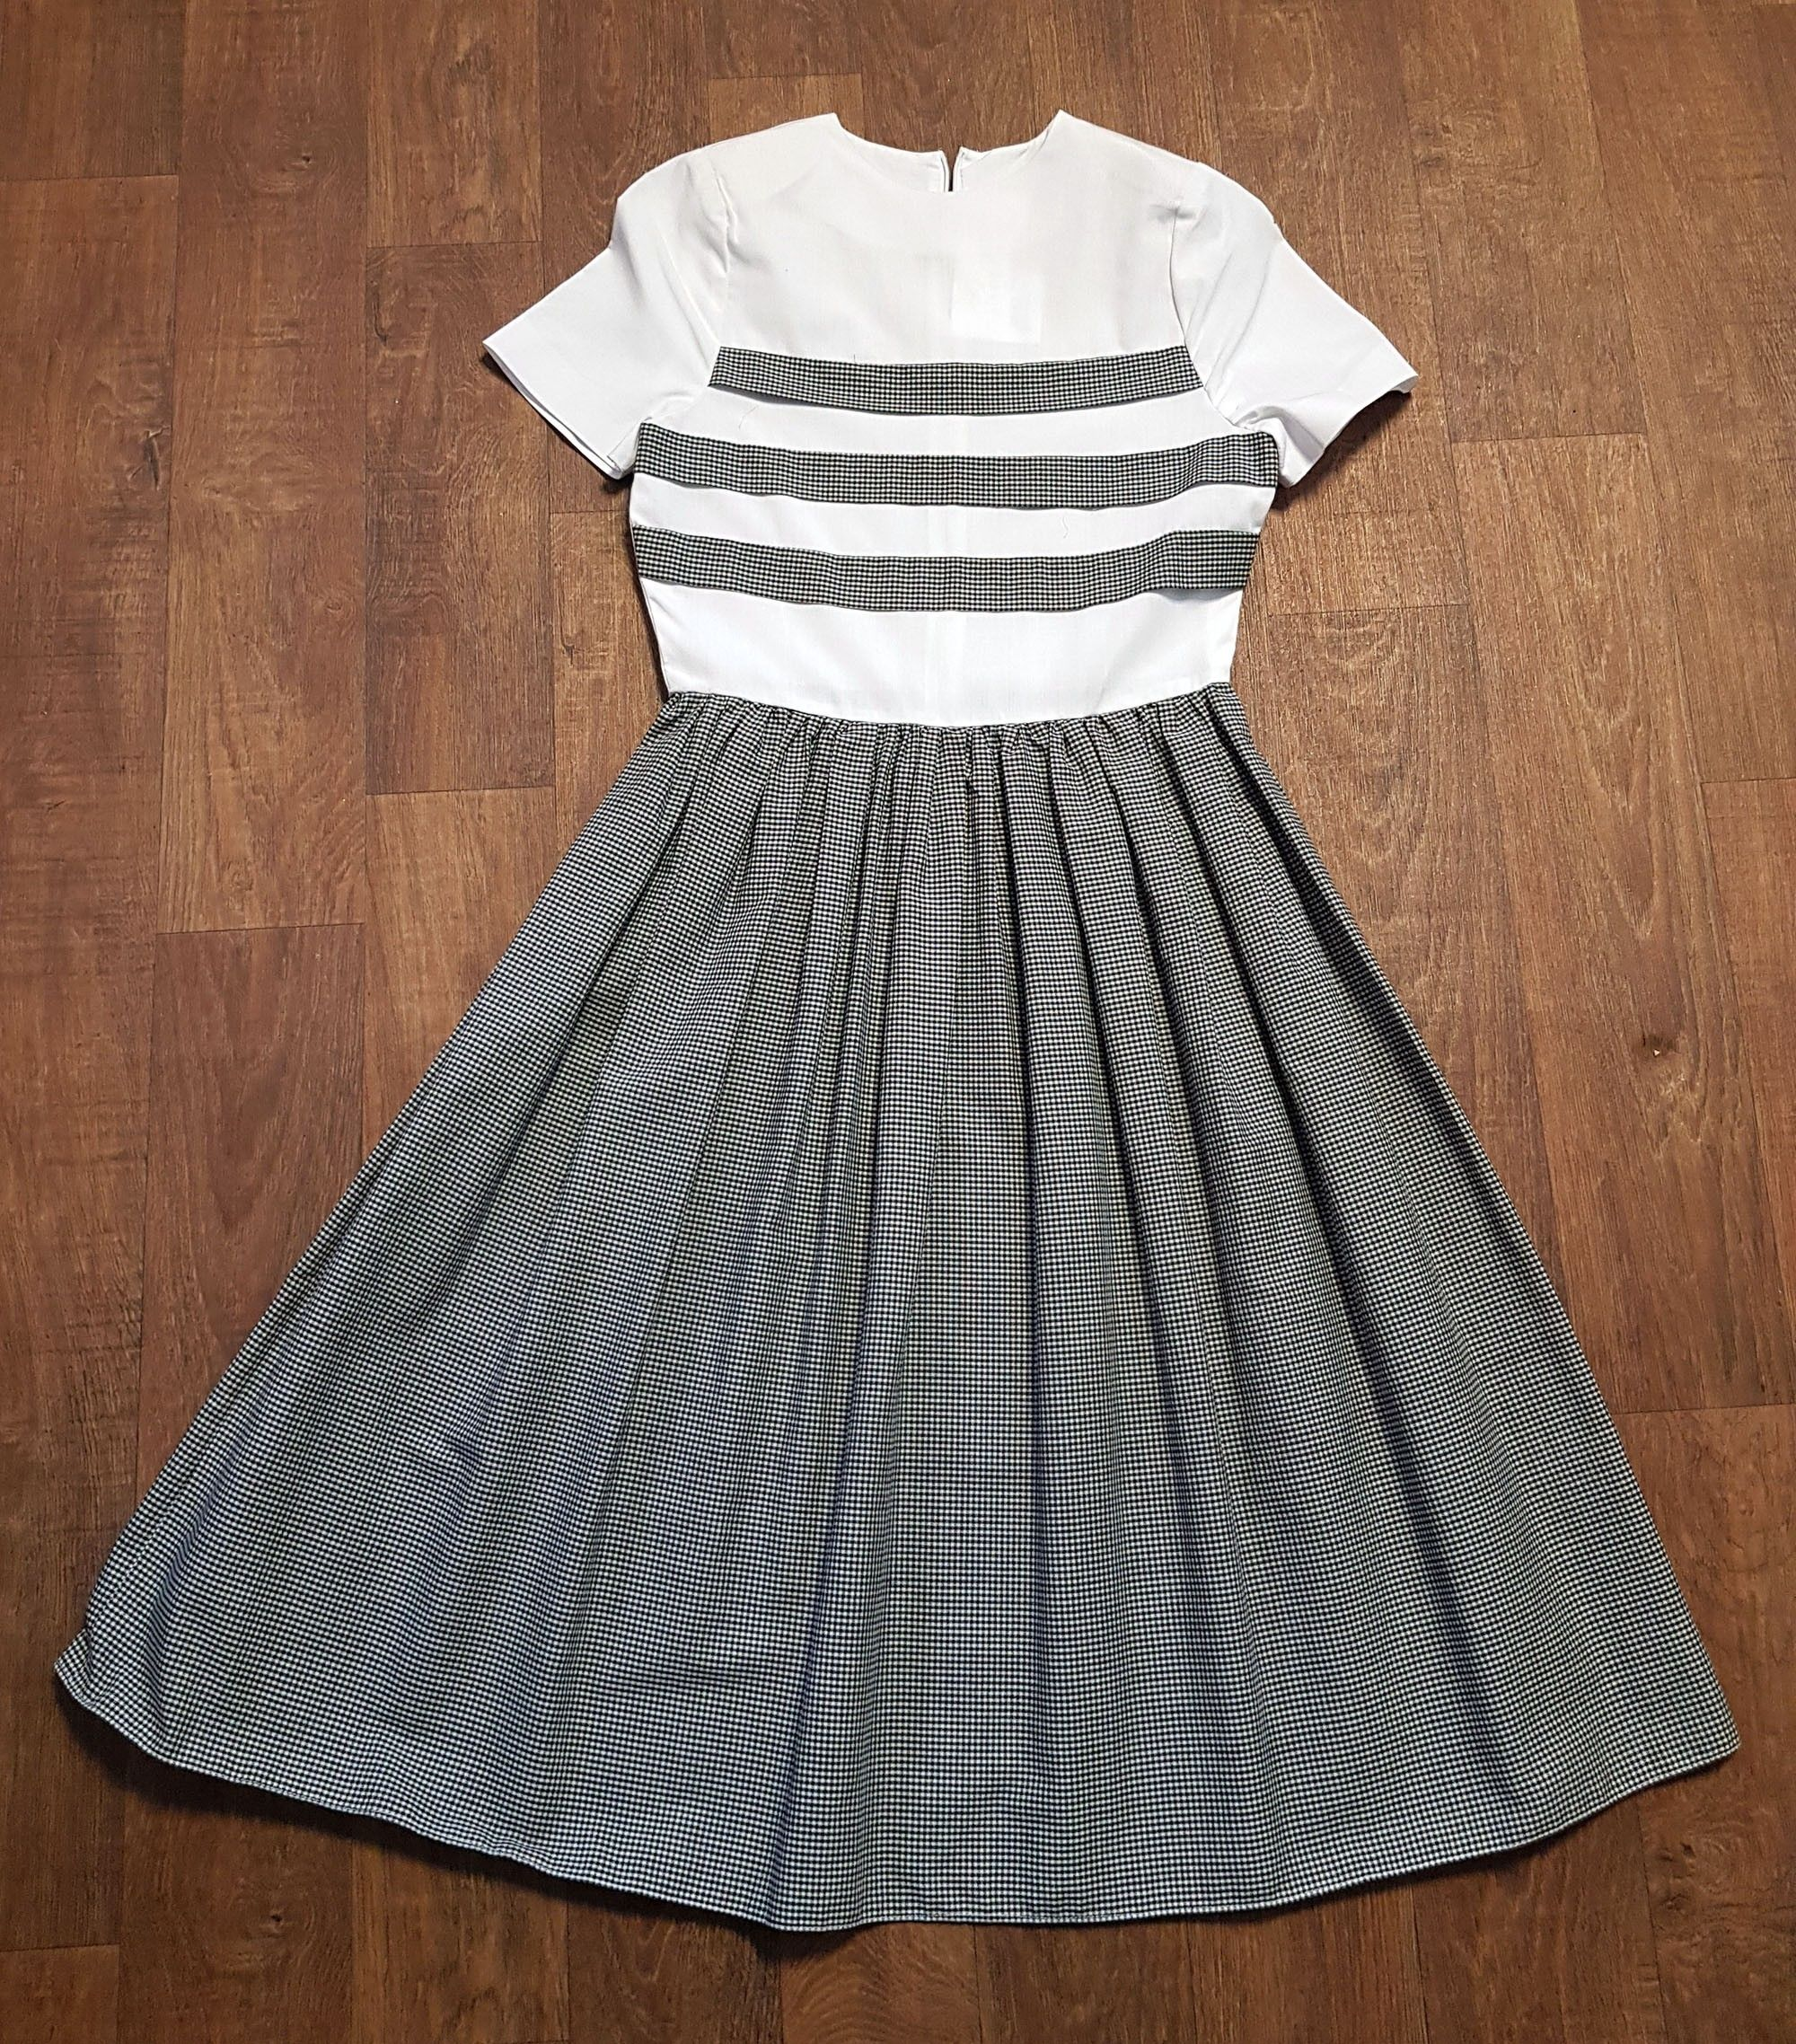 1950s Vintage Black & White Cotton Swing Dress UK Size 8